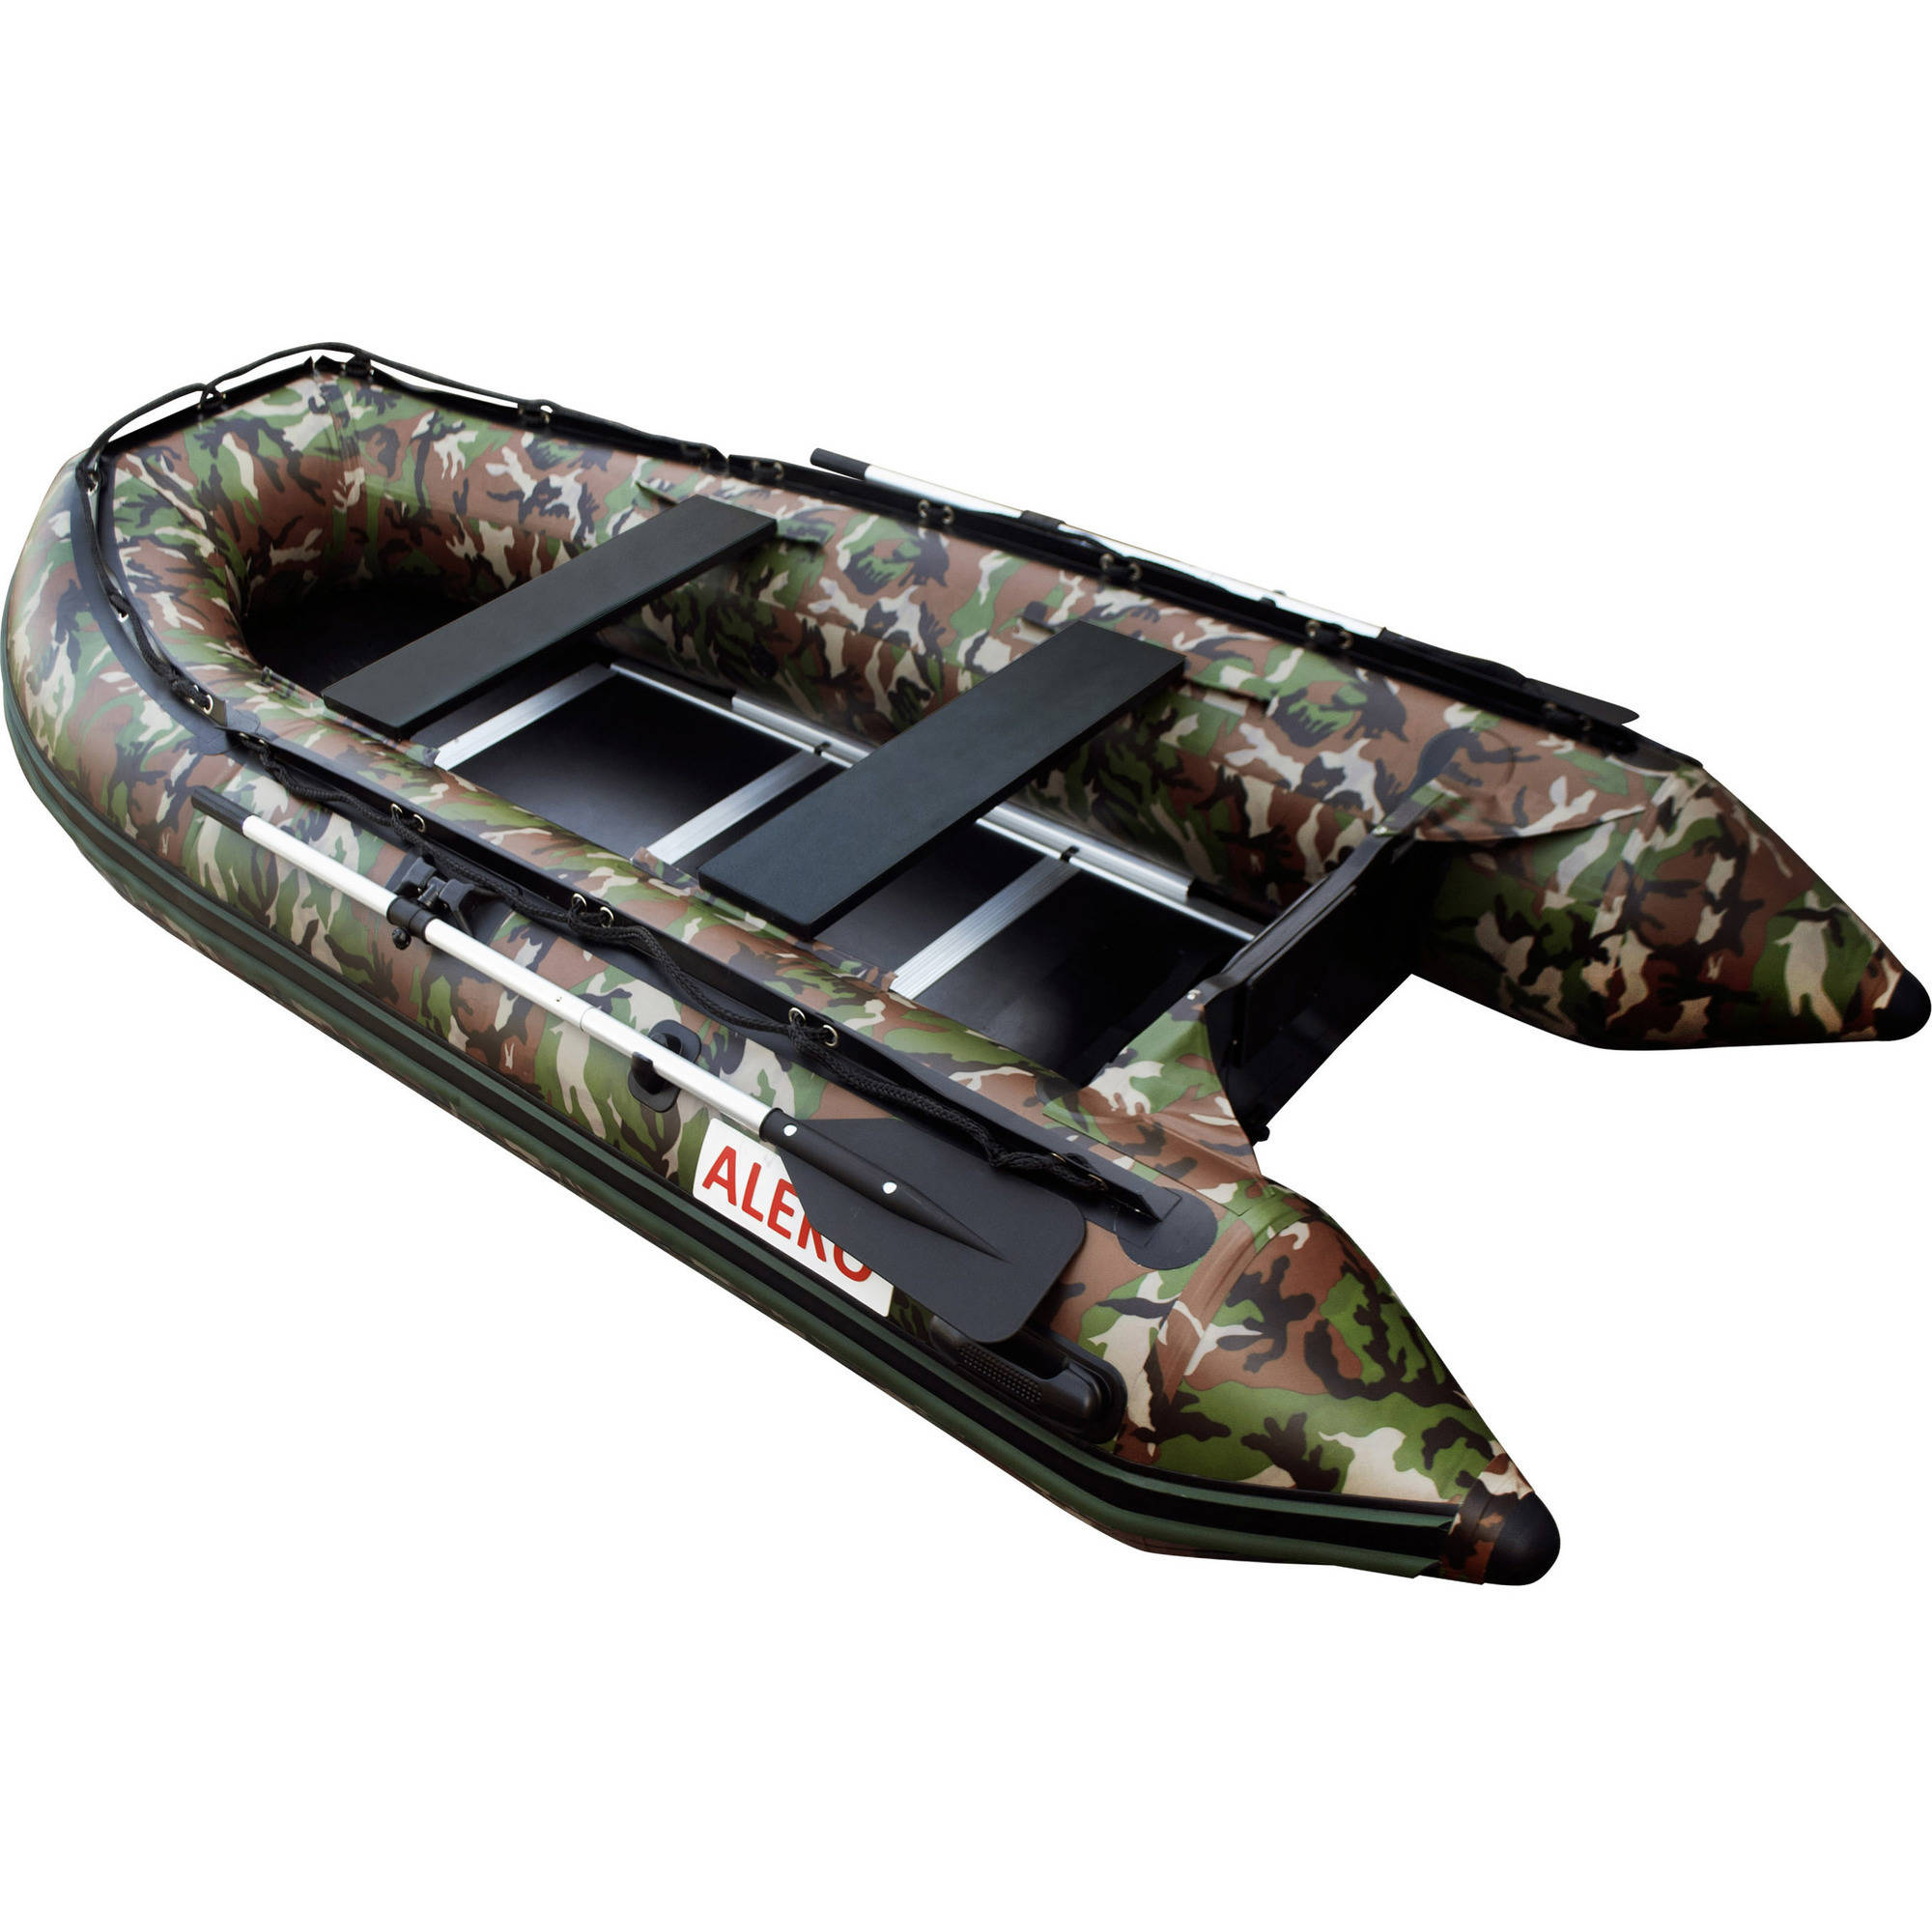 Click here to buy ALEKO Inflatable Boat Wood Floor 10.5 Feet Camouflage Style by ALEKO.